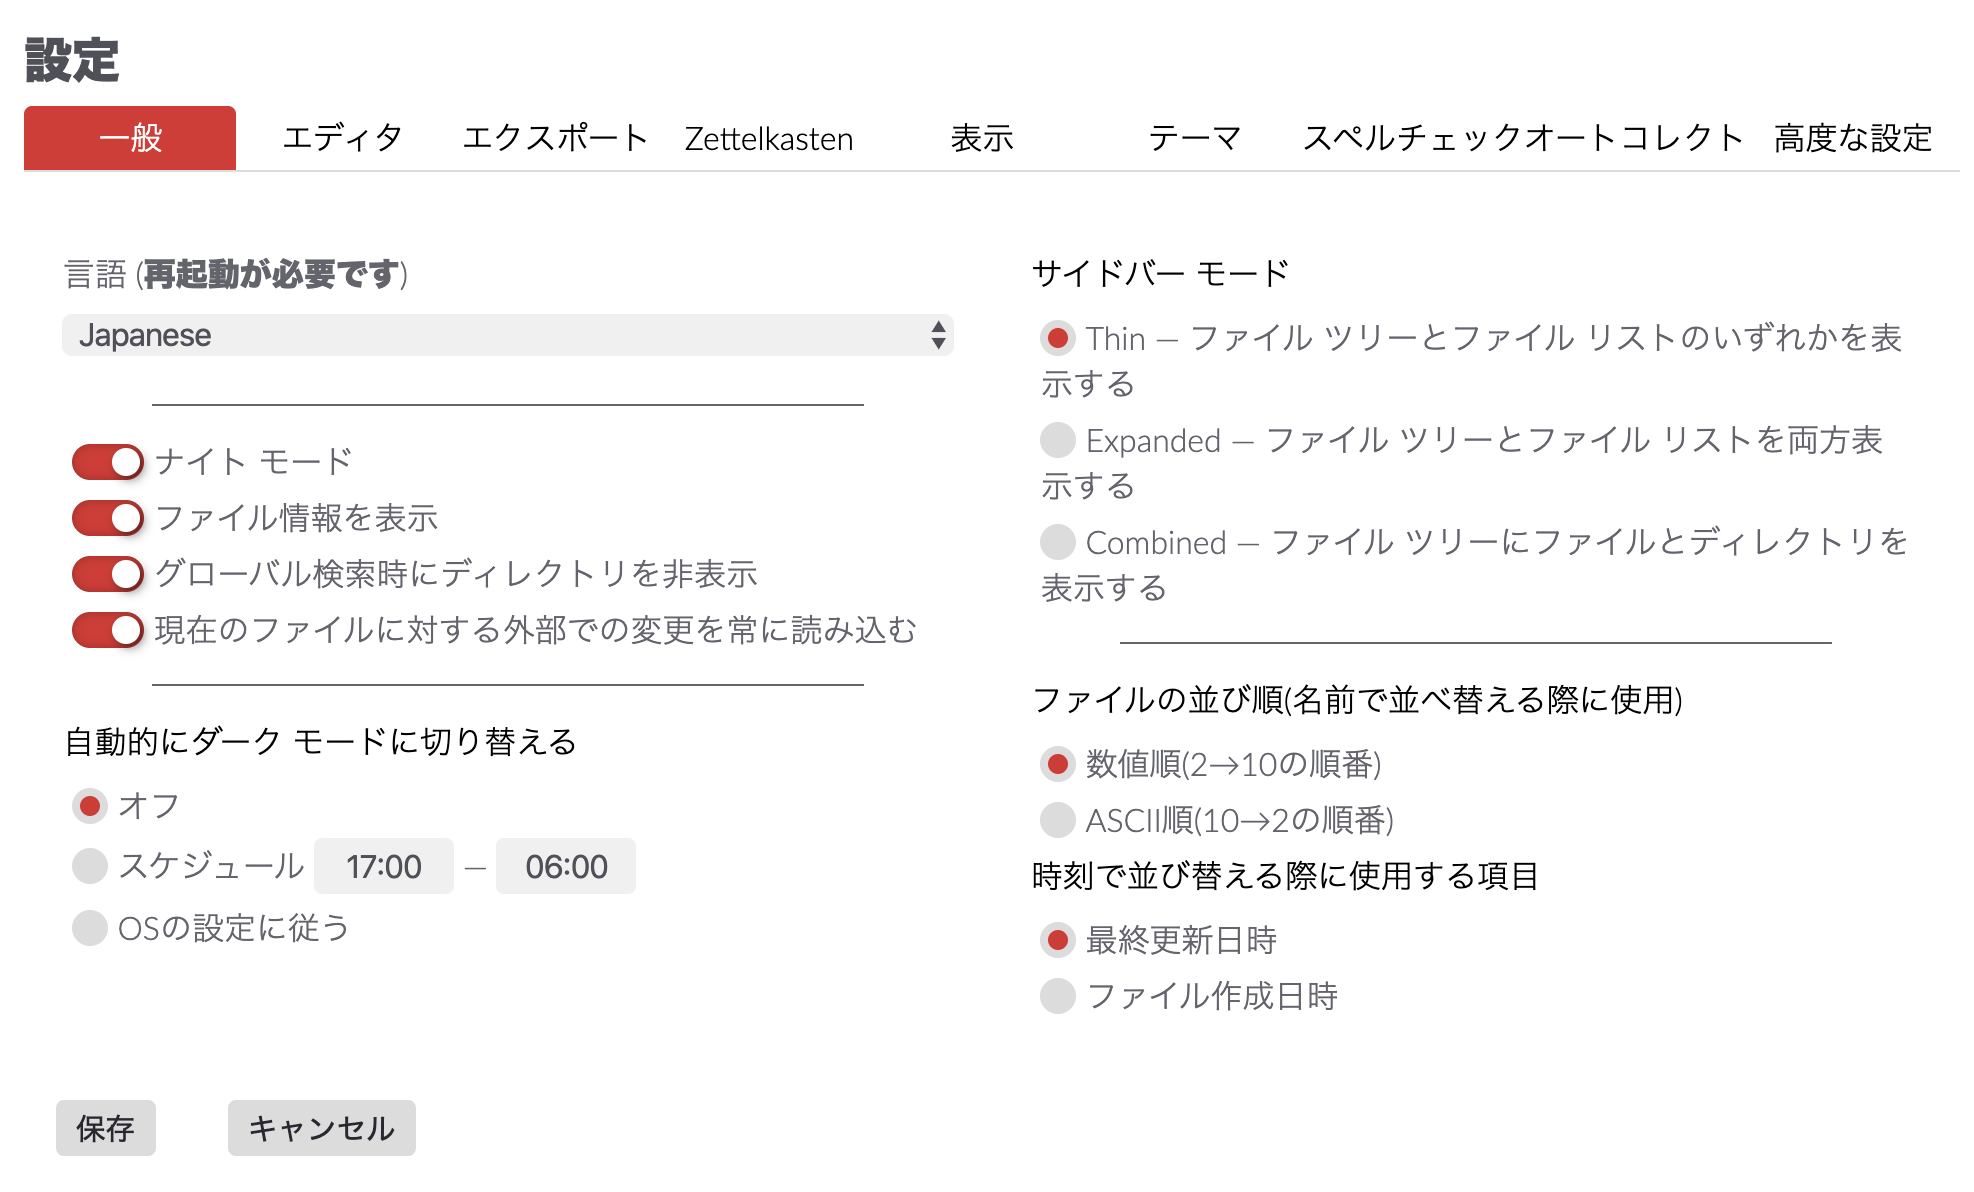 The Preferences dialog in Japanese